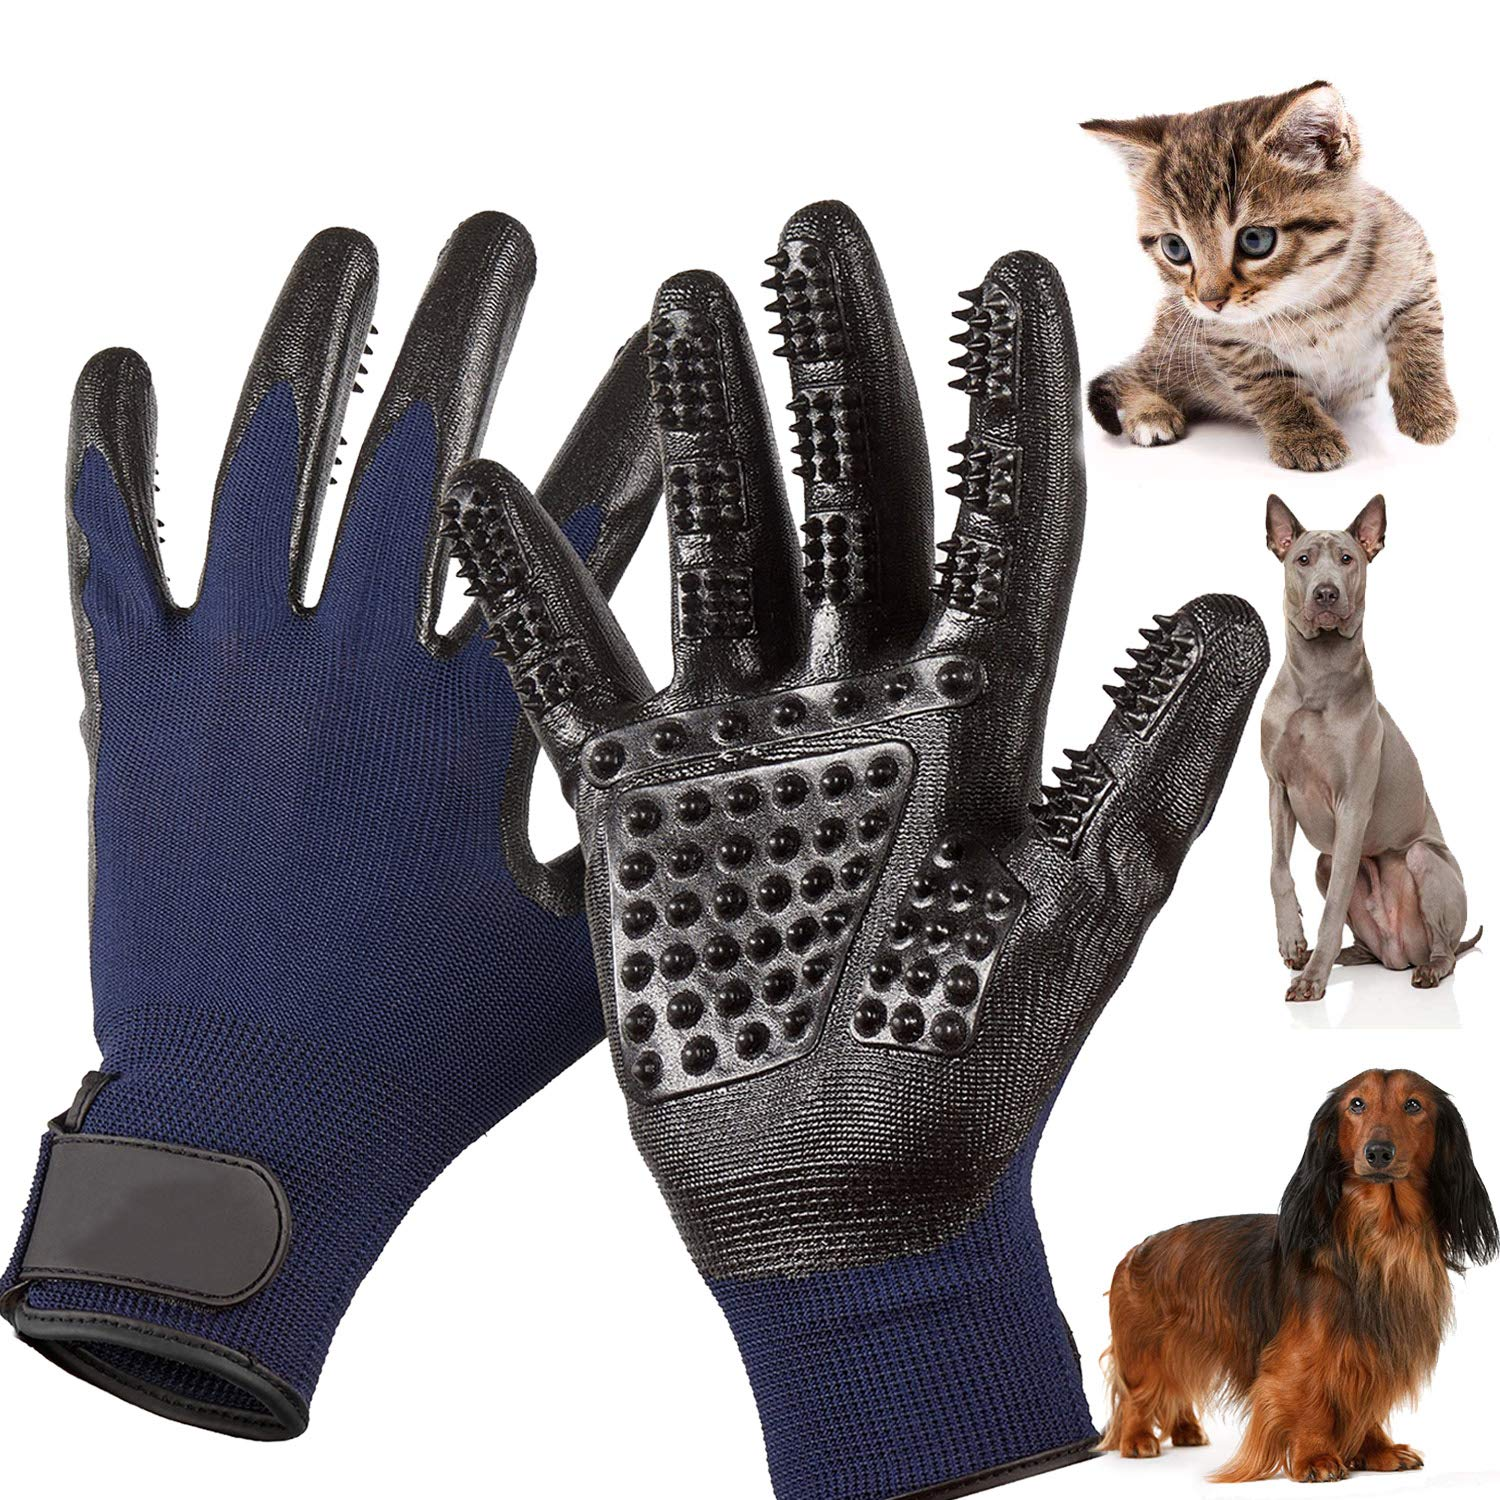 MMTX Pet Massage Gloves - 1 Pair Rubber Deshedding Brush Glove Pets Hair Remover Mitts Pet Bath Grooming Massage Tool for Cats and Dogs with Long & Short Fur by MMTX (Image #8)